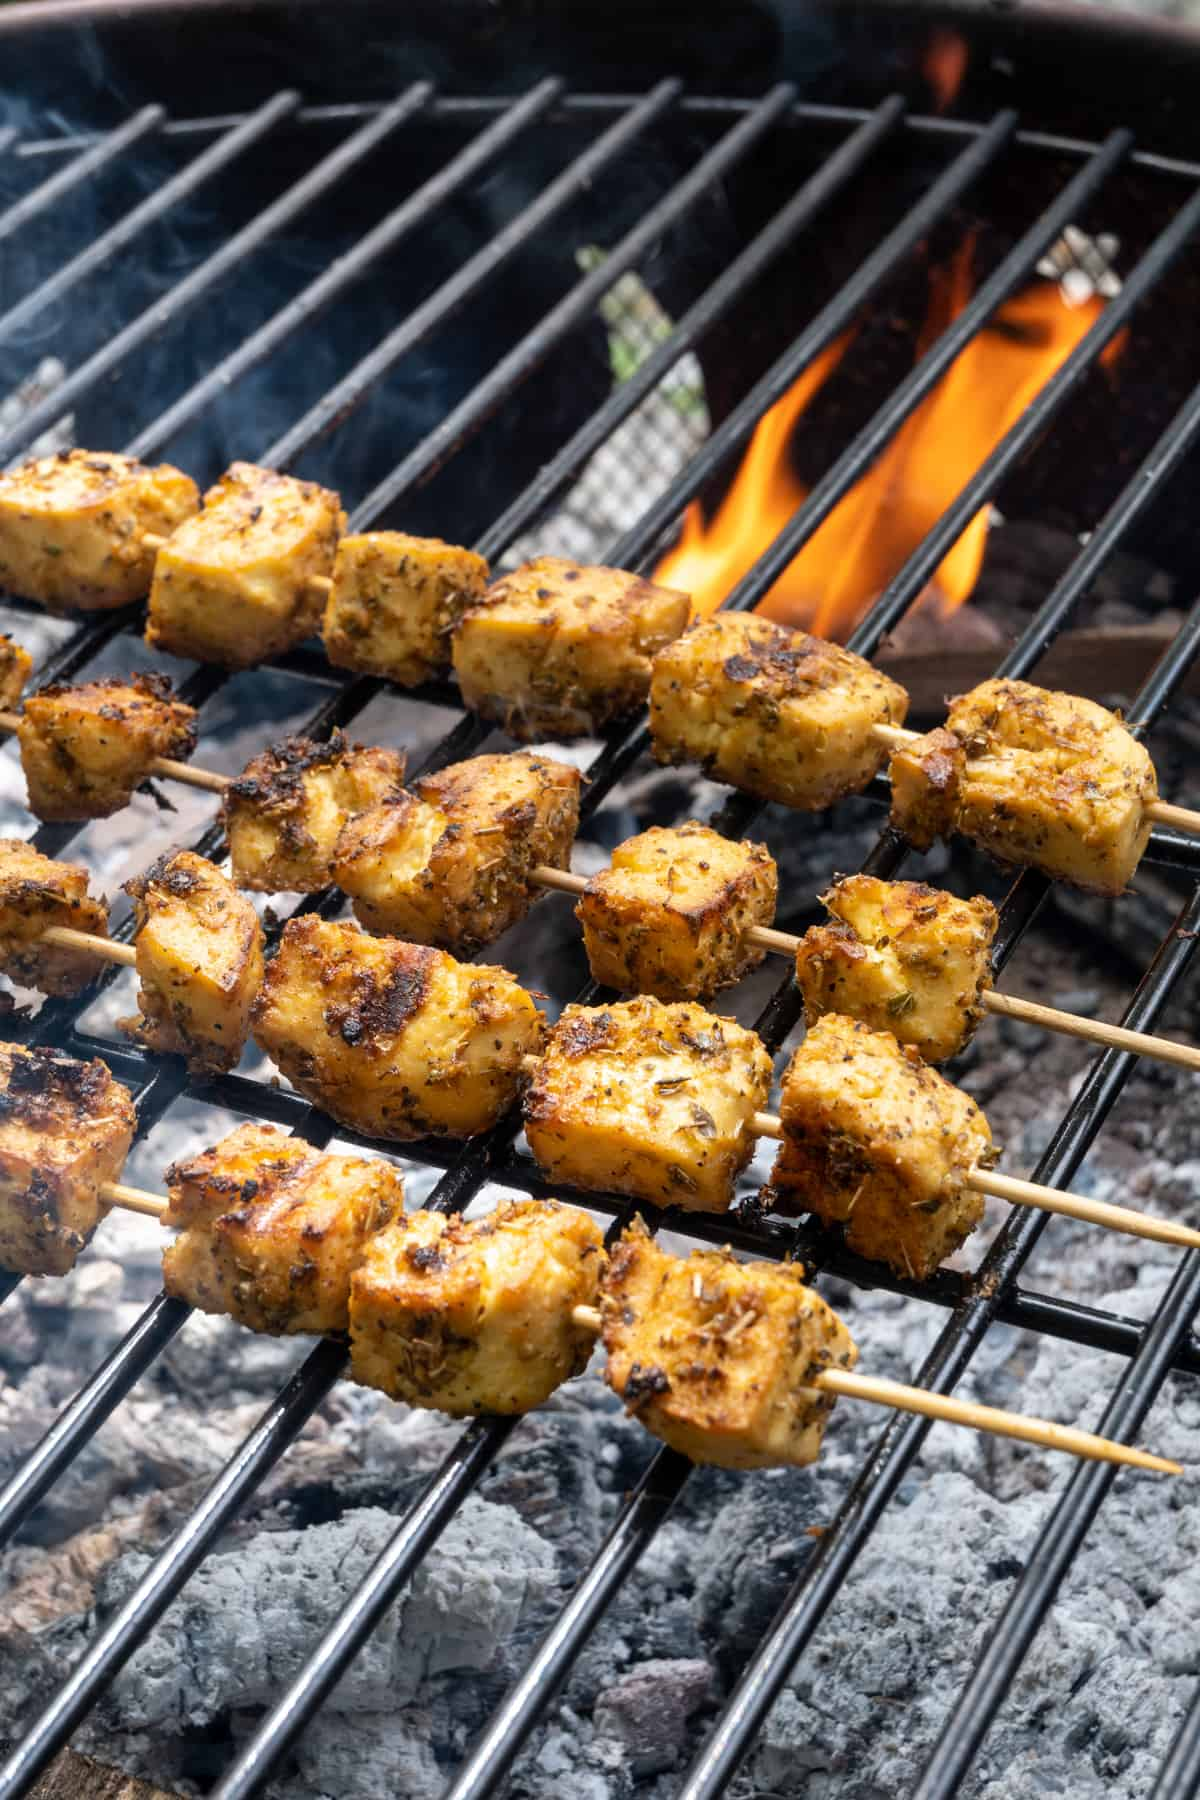 Tofu skewers on a roast over a firepit after cooking. The tofu looks golden brown, lightly crispy and is gently charred in some places.